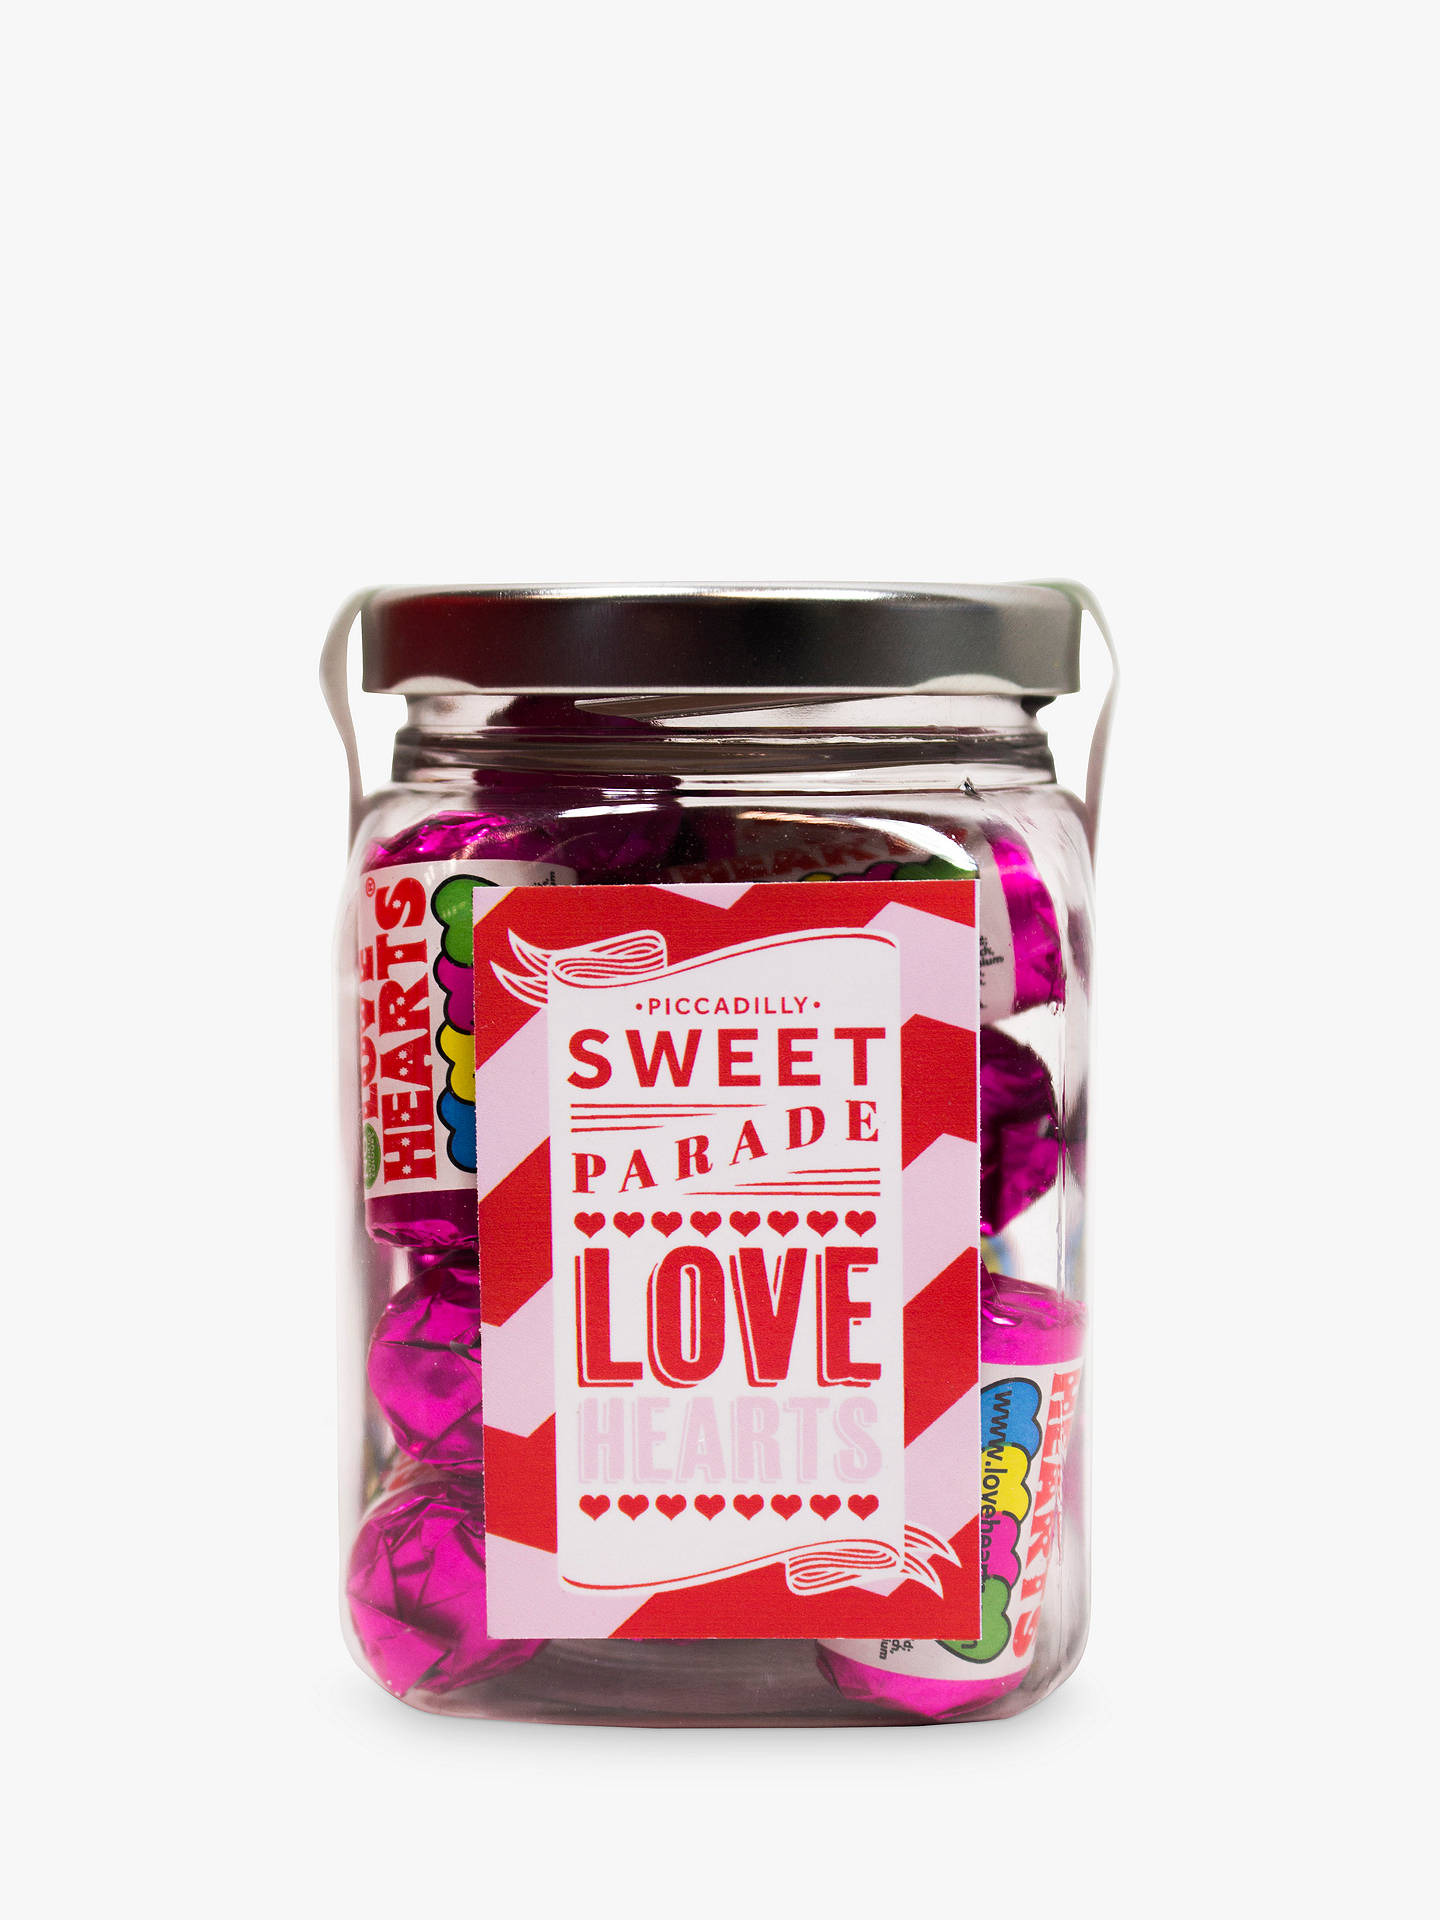 BuyPiccadilly Sweet Parade 'Love Heart' Sweet Jar, 180g Online at johnlewis.com